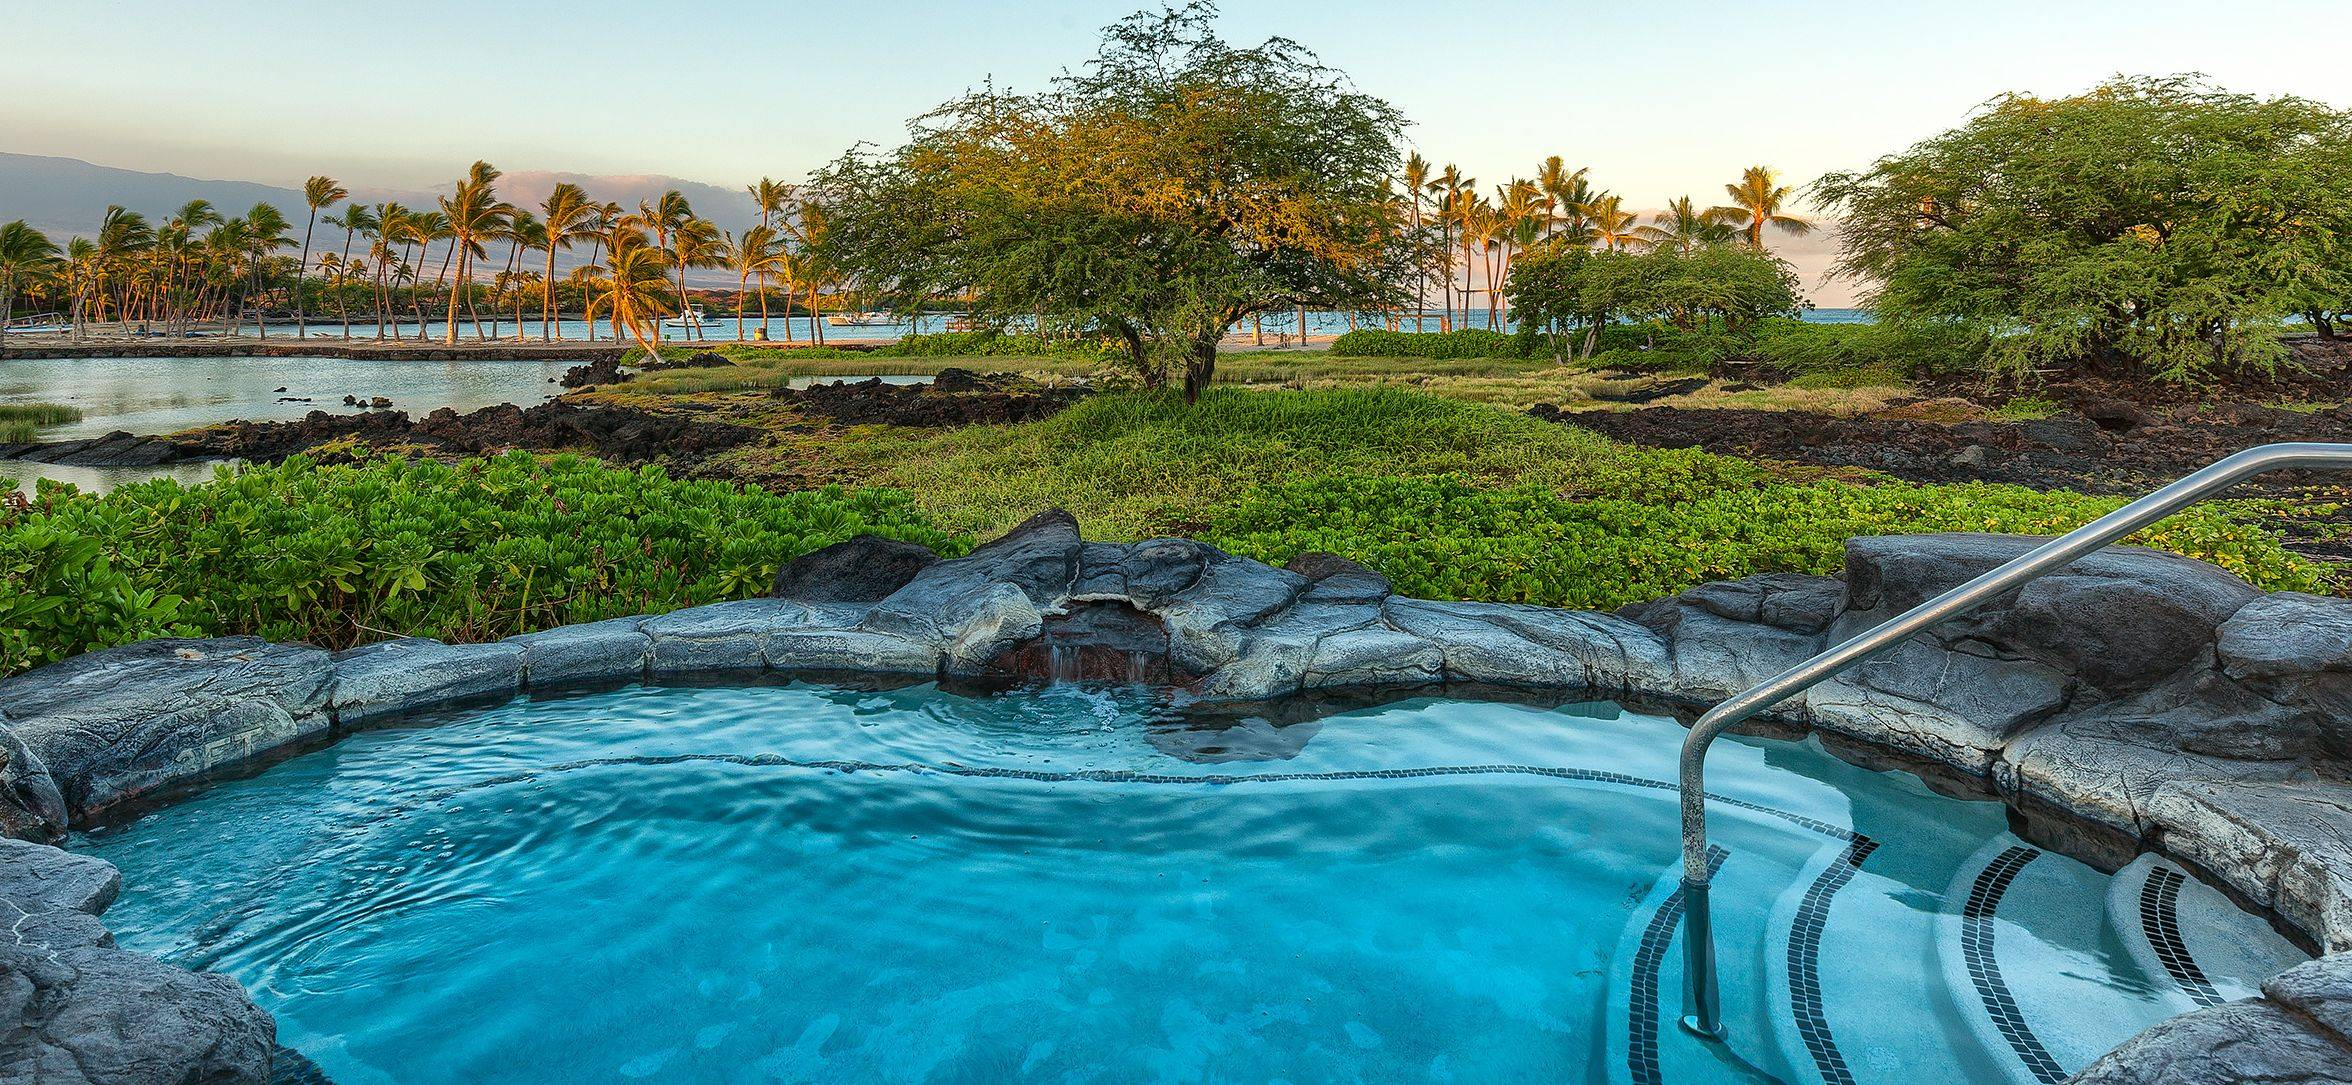 Kolea at Waikoloa Amenity Center Hot Tub